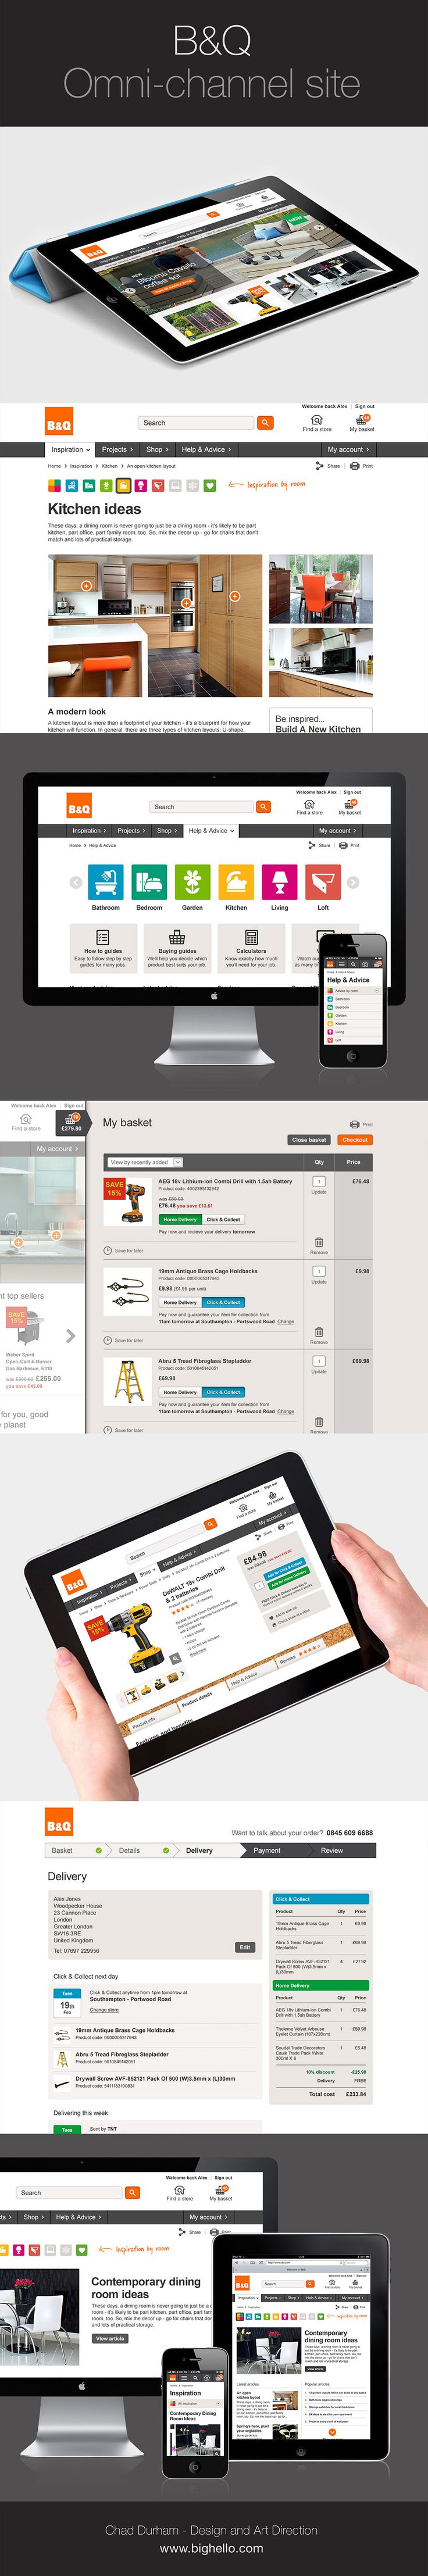 B&Q website in top 15 of the best responsive sites from 2014. UI design by Chad Durham of Big Hello Design.